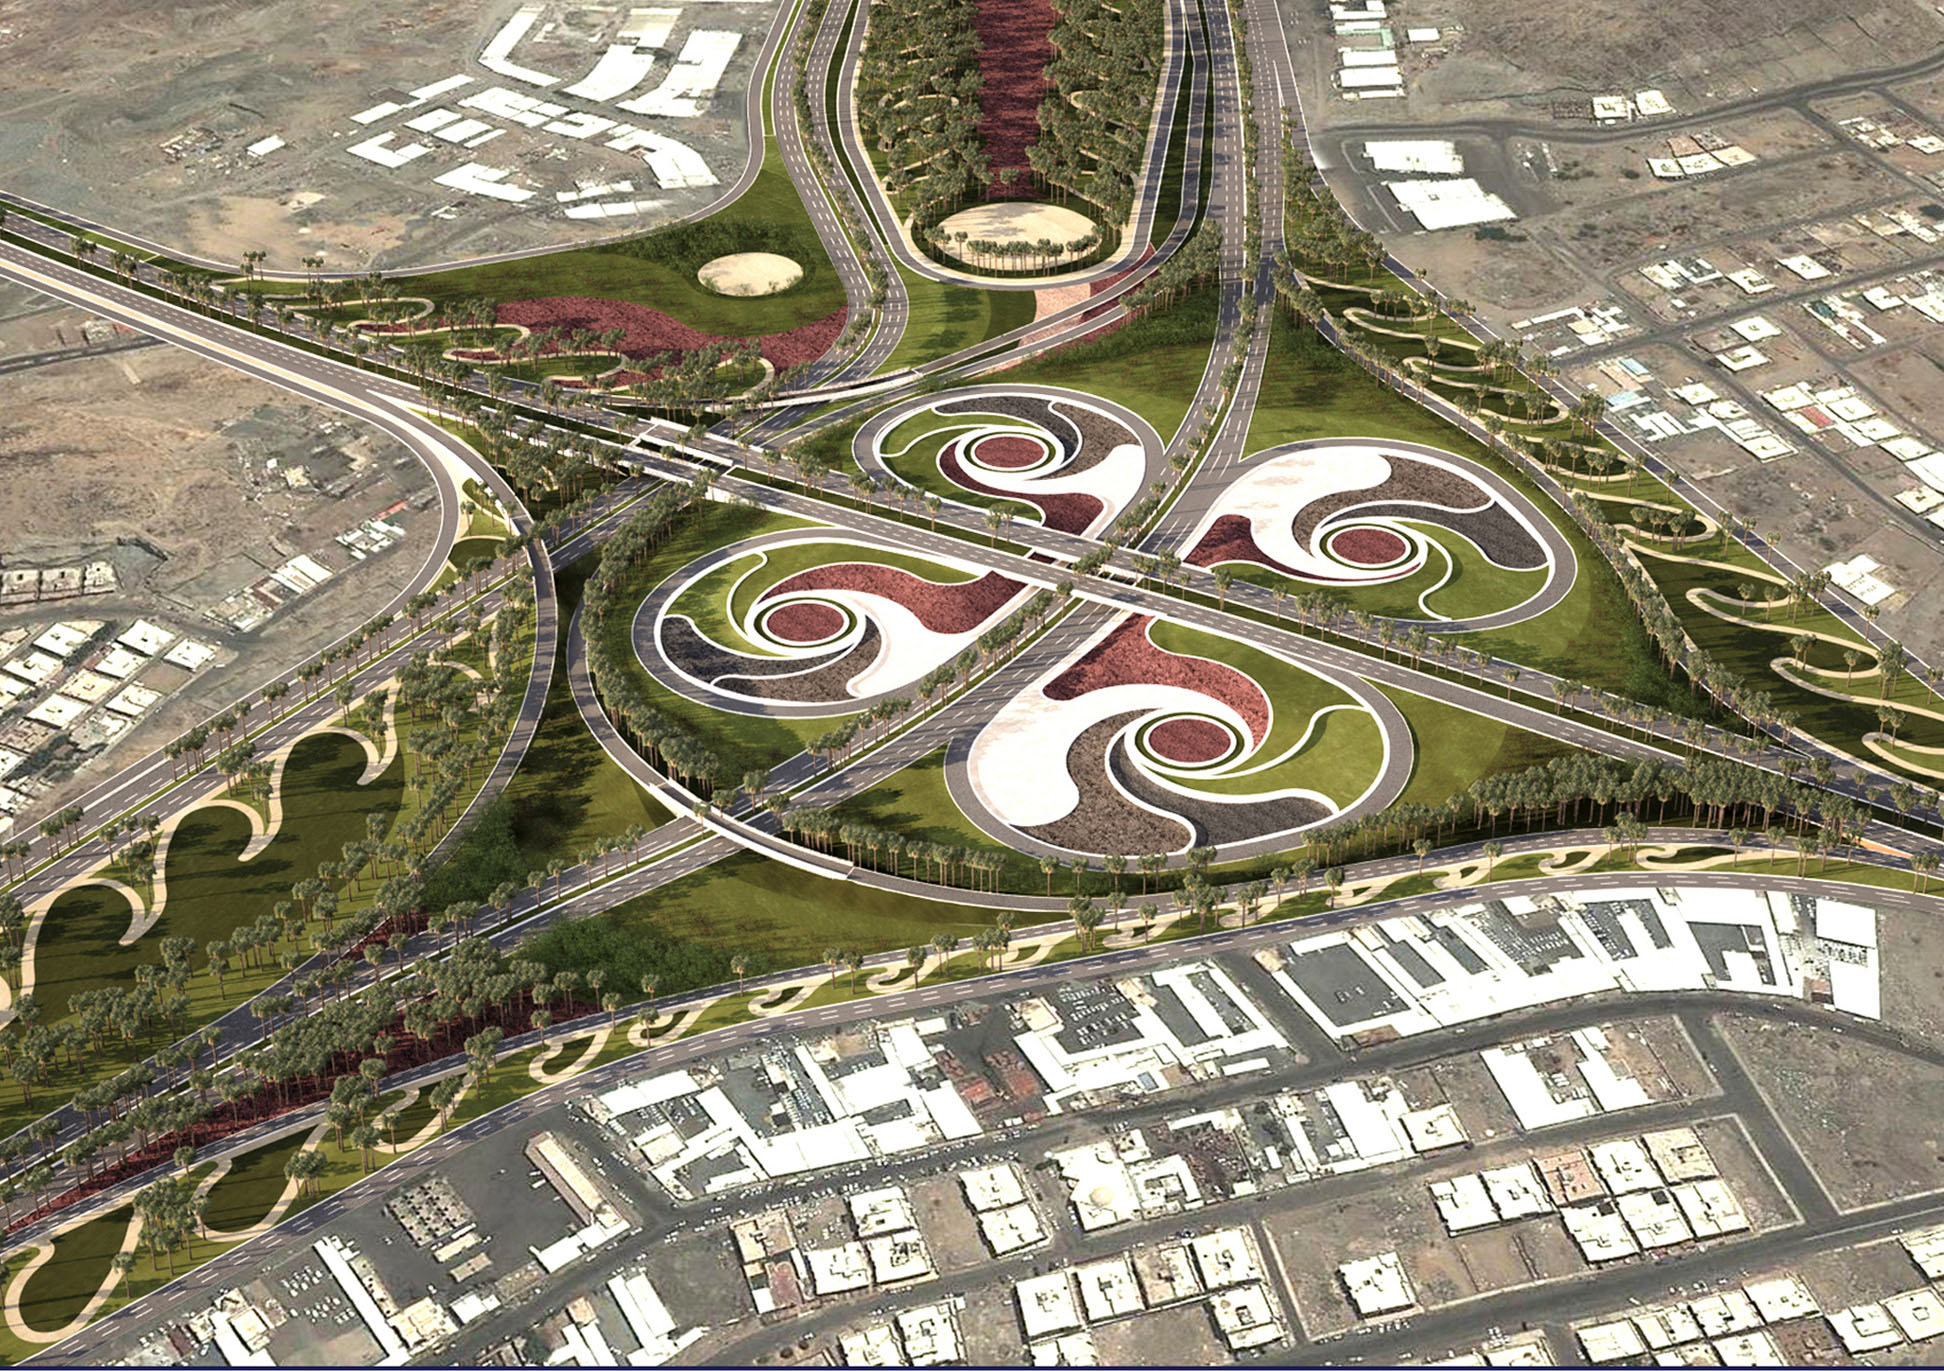 Street interchange project